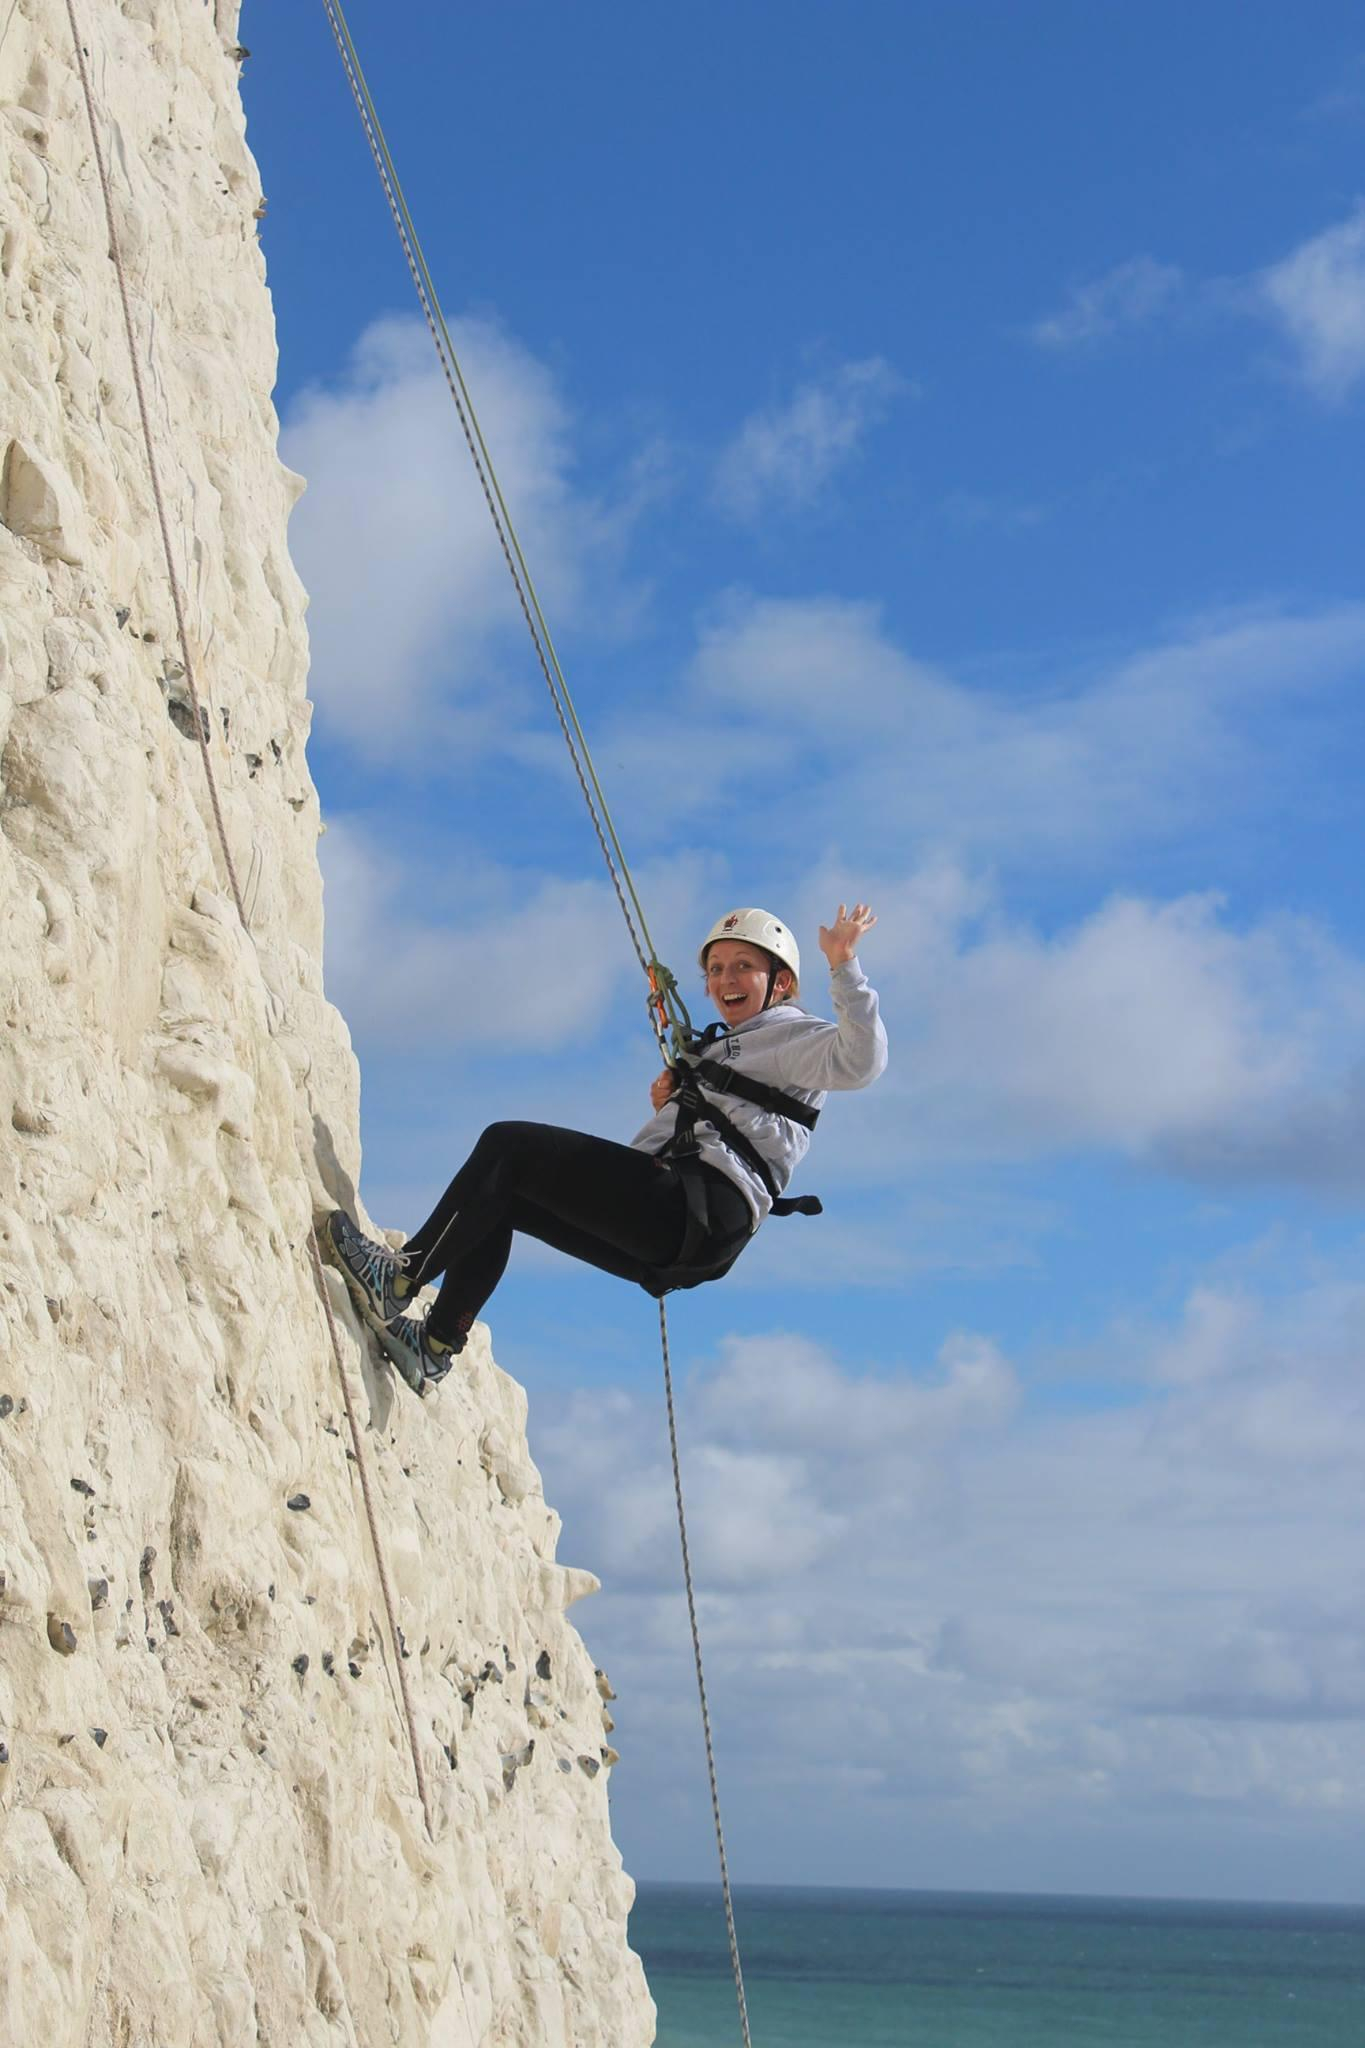 Abseil for Raystede